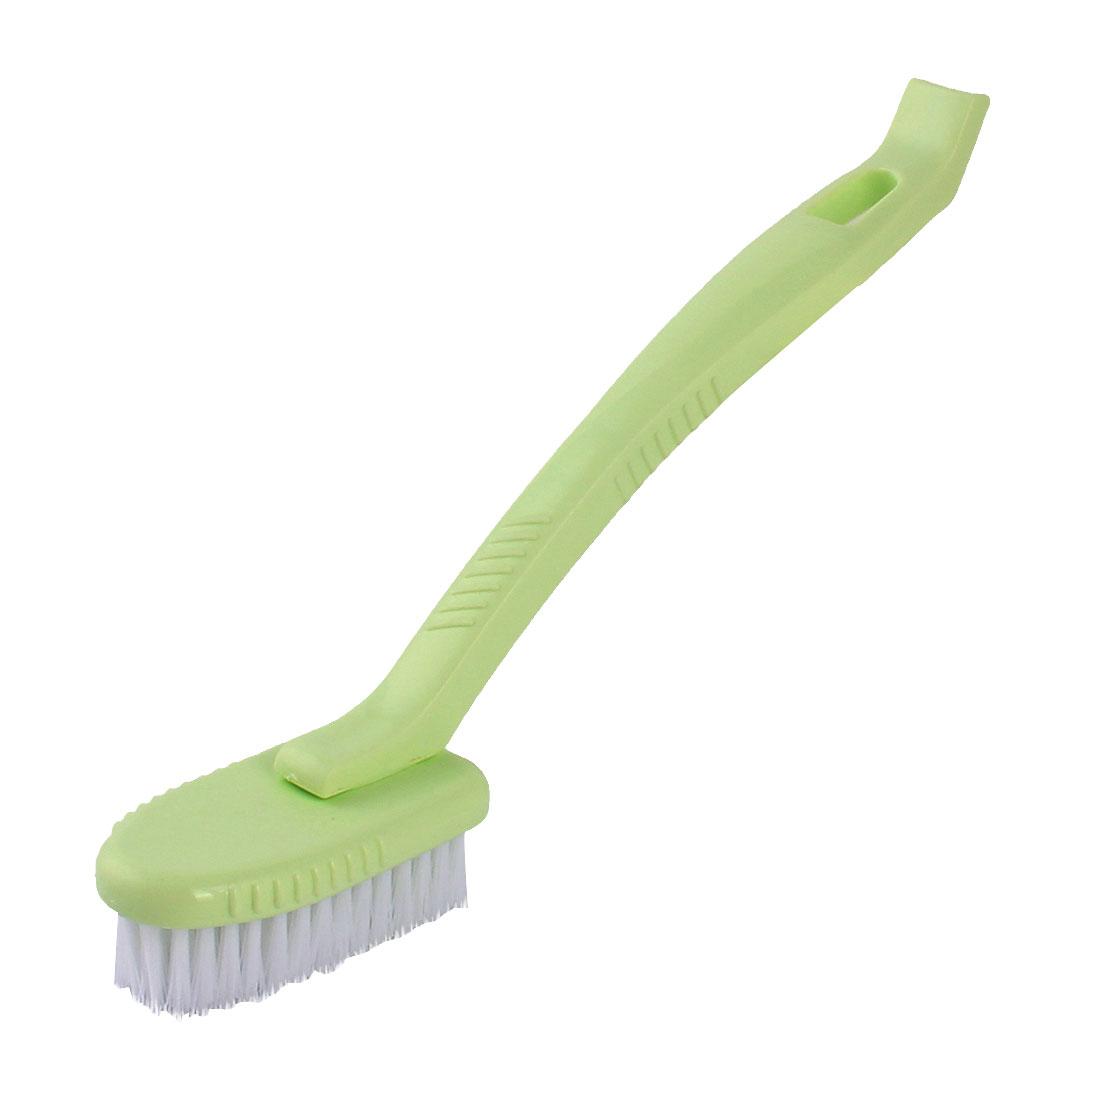 Home Laundry Long Handle Detachable Multipurpose Shoes Brush Cleaning Tool Pale Green